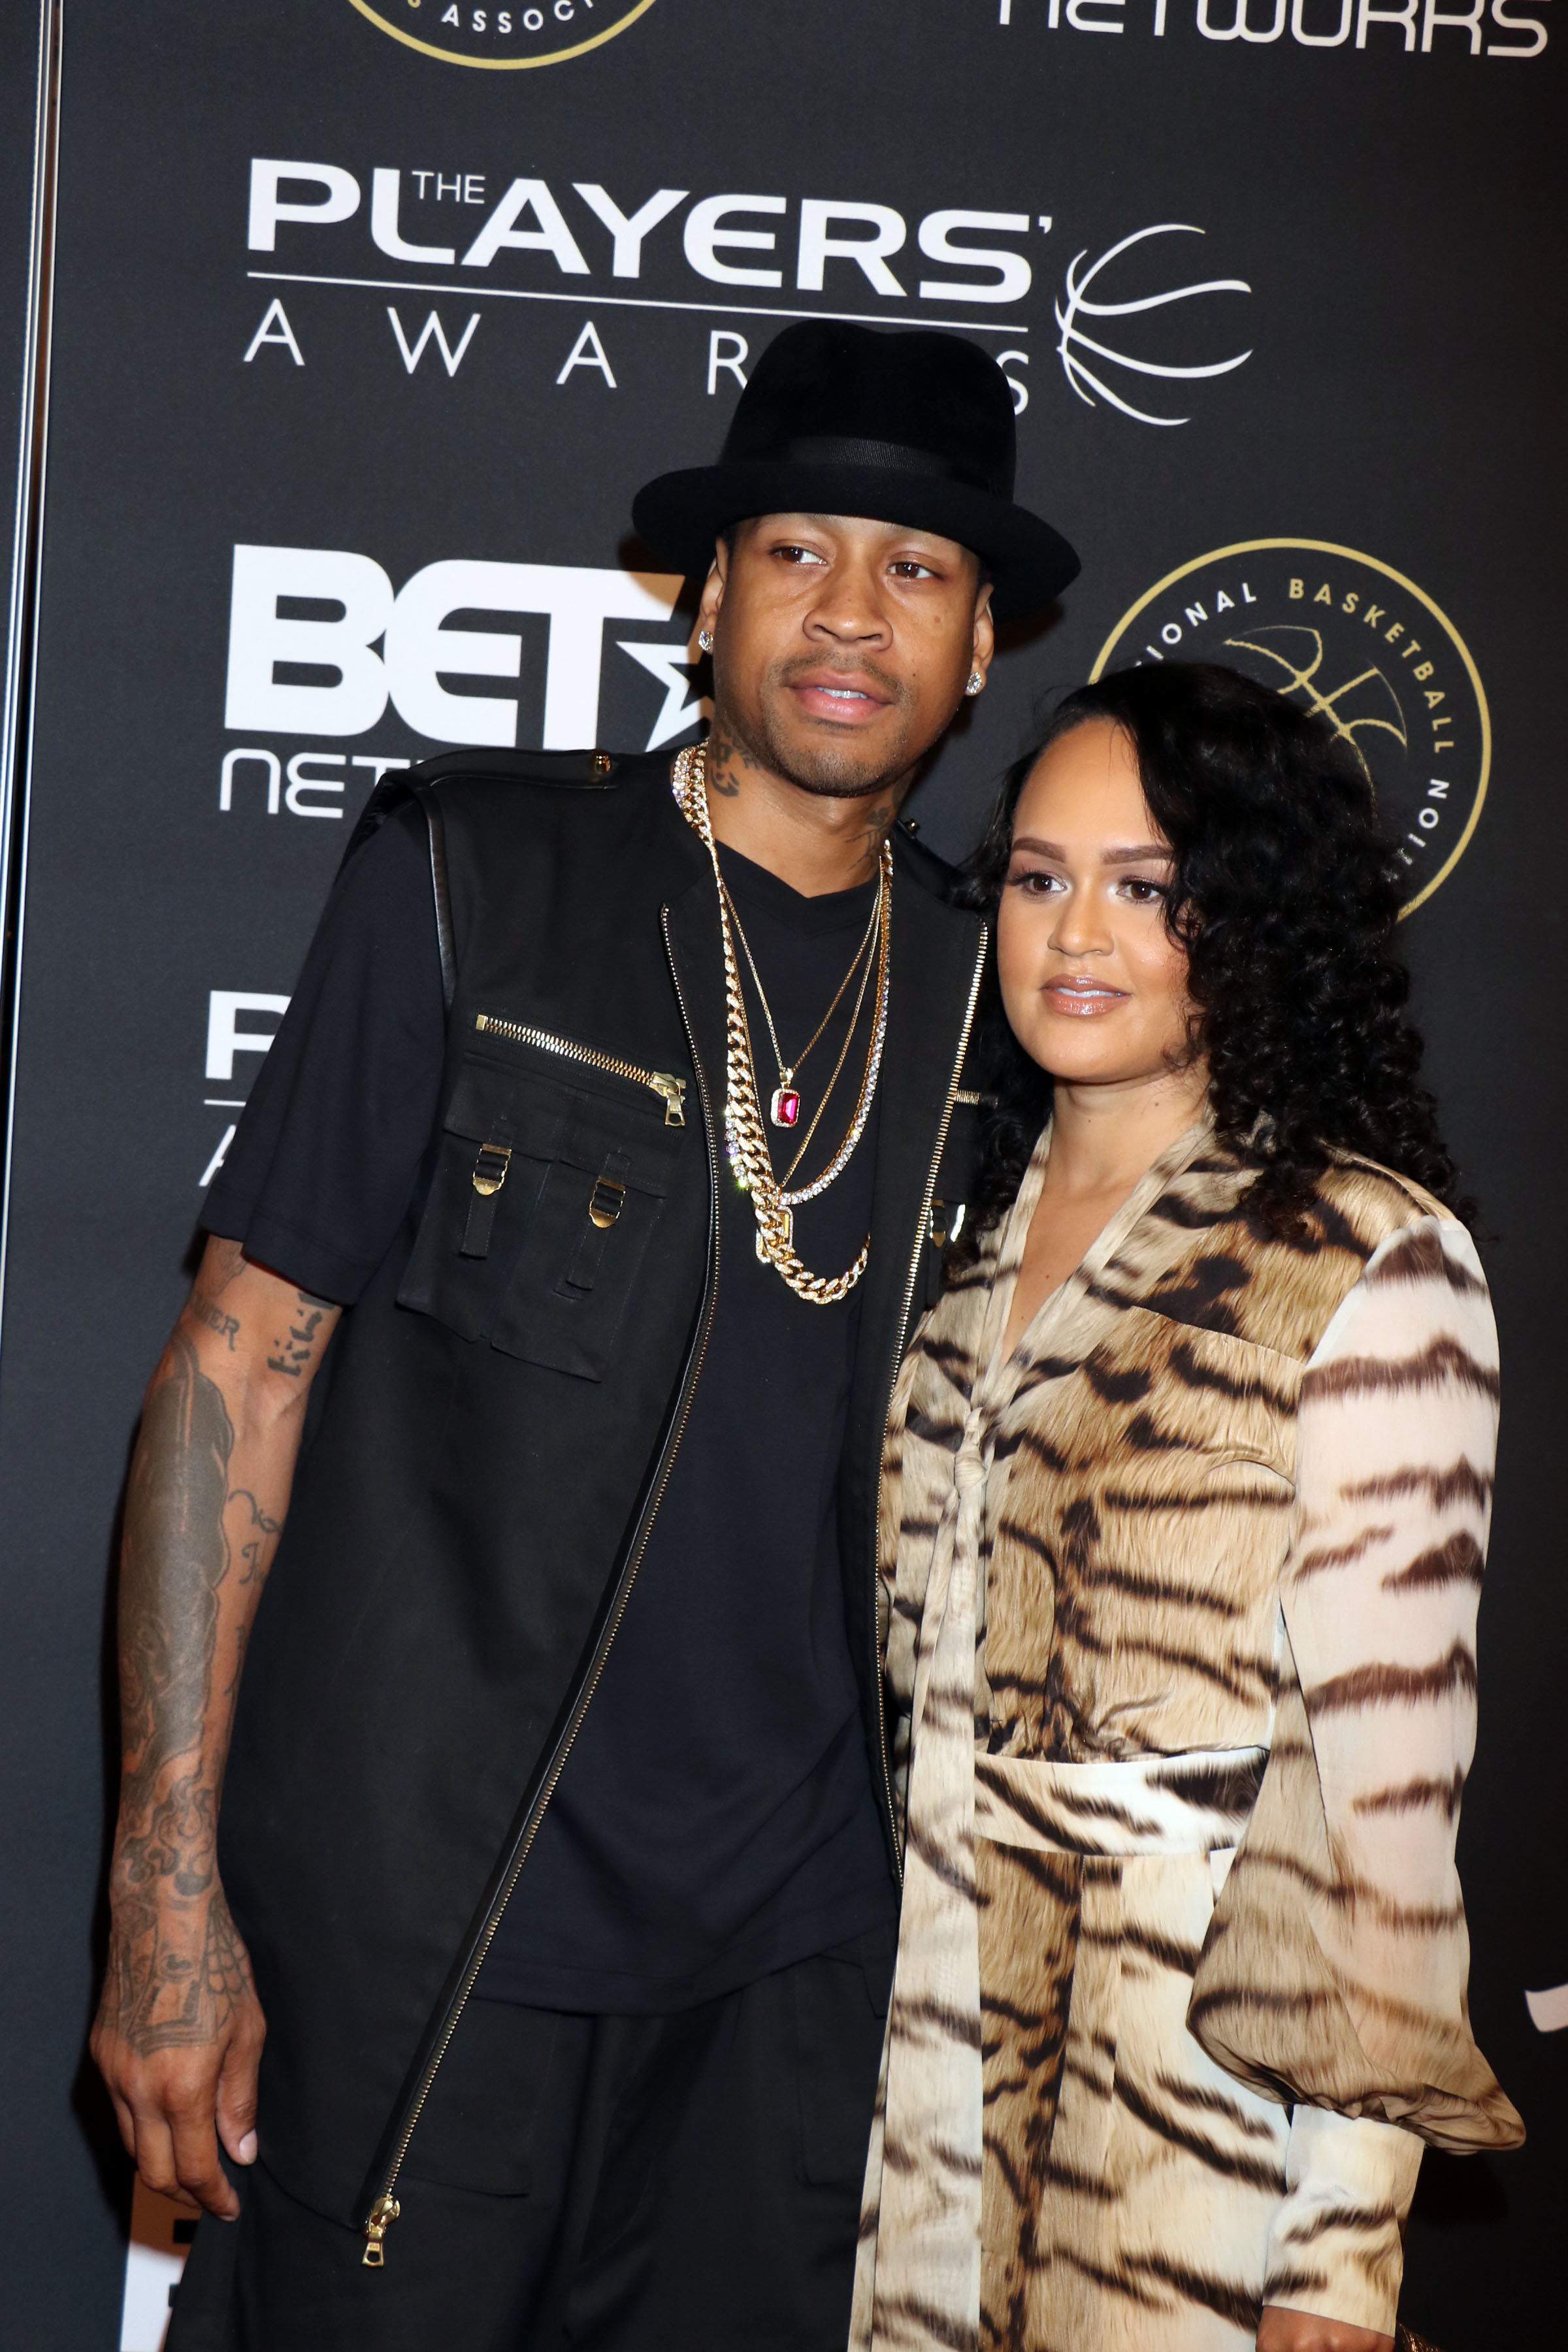 The Players Awards held at the Penn & Teller Theater at the Rio Las Vegas Hotel & Casino in Las Vegas Featuring: Allen Iverson, Tawanna Iverson Where: Las Vegas, Nevada, United States When: 19 Jul 2015 Credit: DJDM/WENN.com